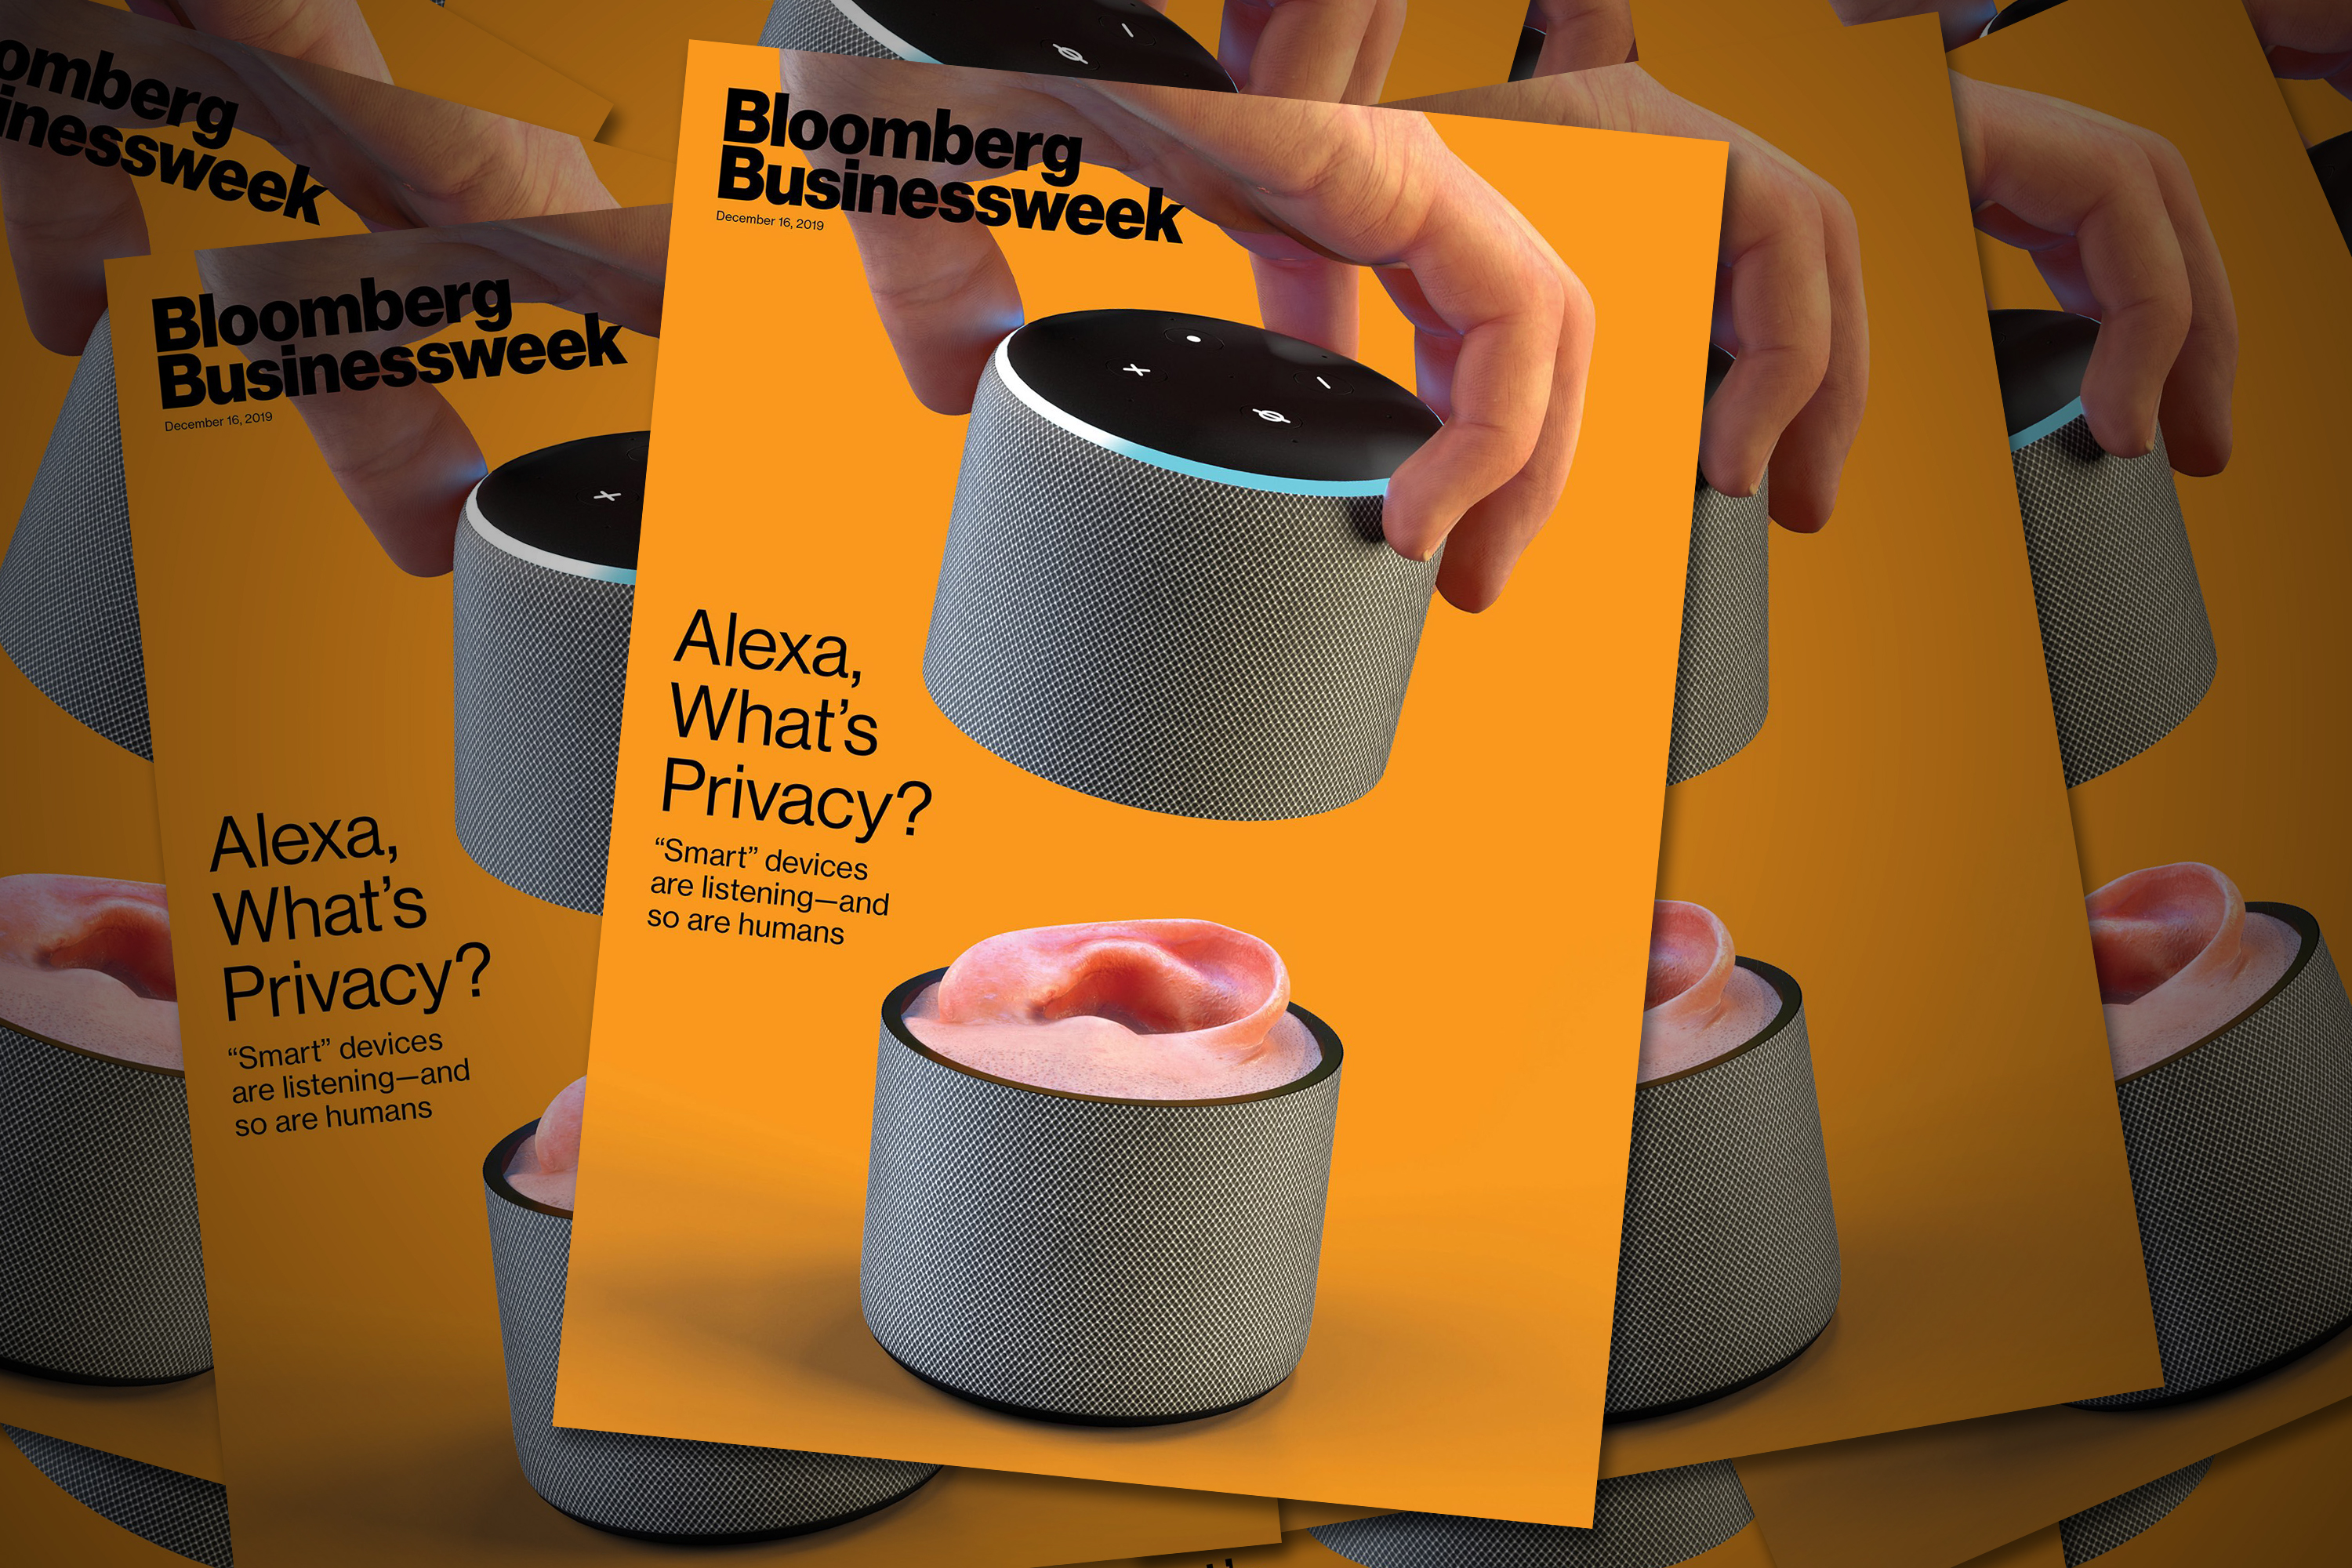 We're not commenting on this vaguely disturbing Bloomberg Businessweek cover (but Cindy Gallop did)